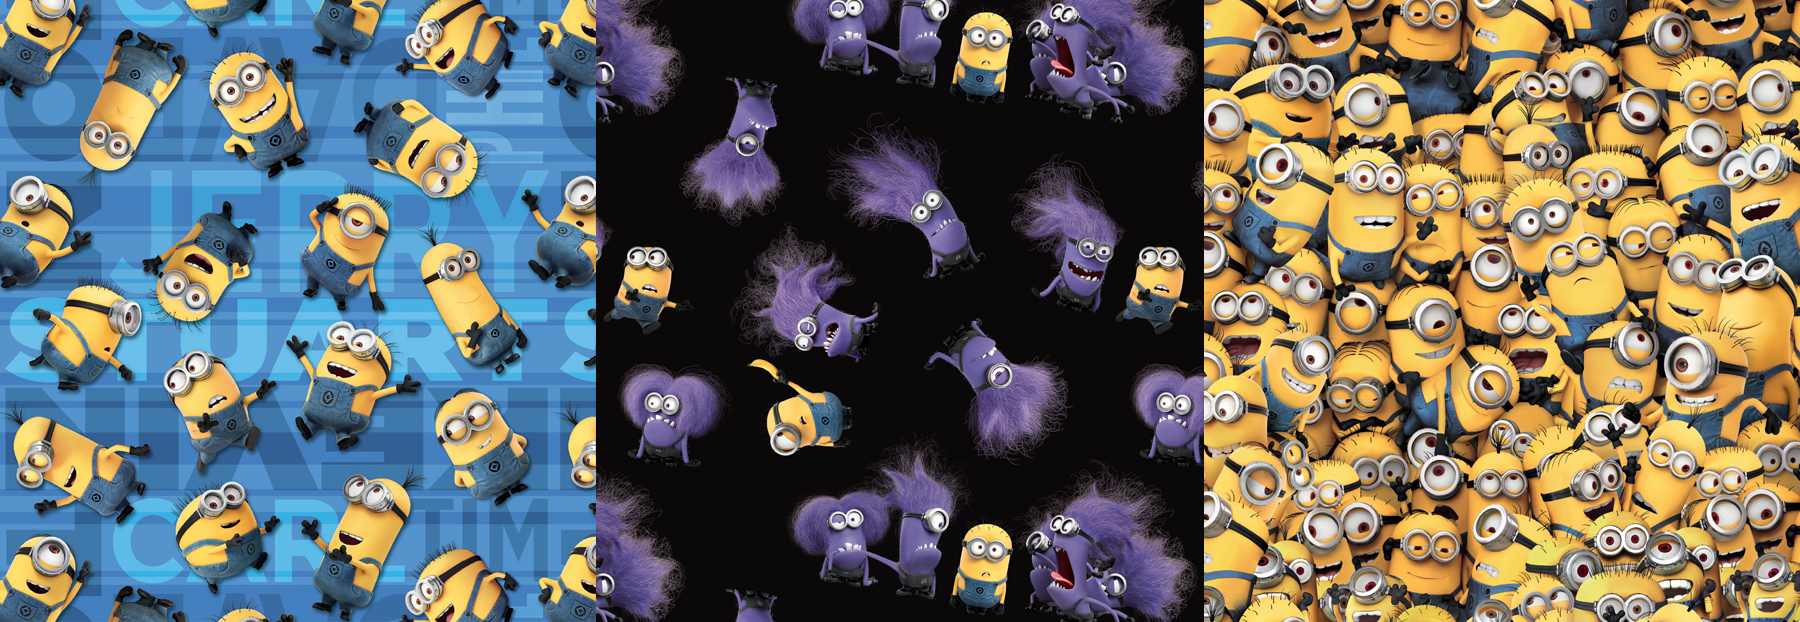 Minions Character Pattern Style Guide Design - Thumb 2